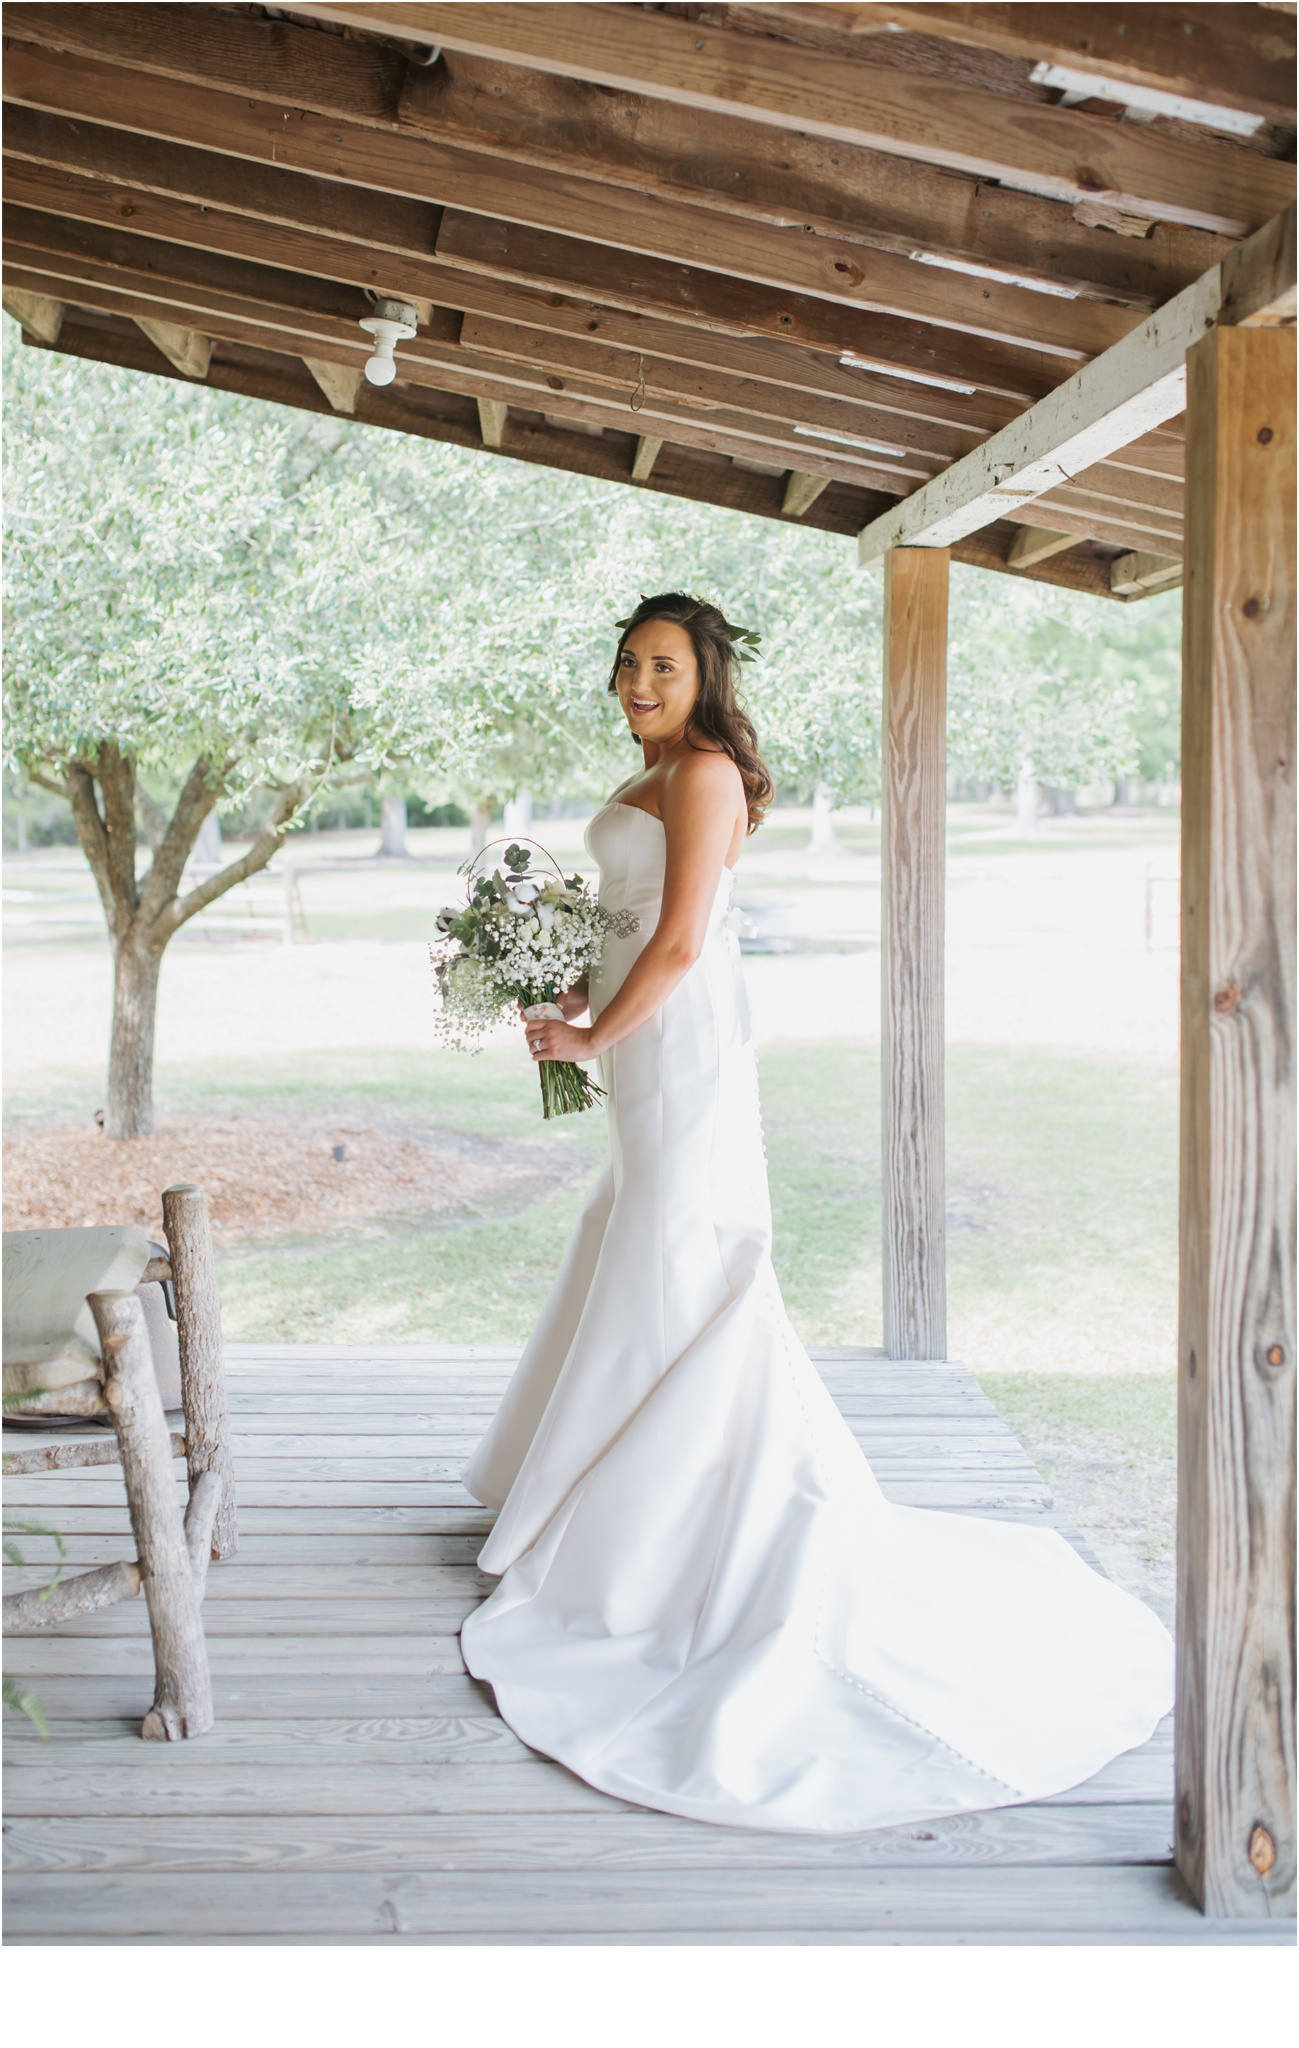 Rainey_Gregg_Photography_St._Simons_Island_Georgia_California_Wedding_Portrait_Photography_0895.jpg